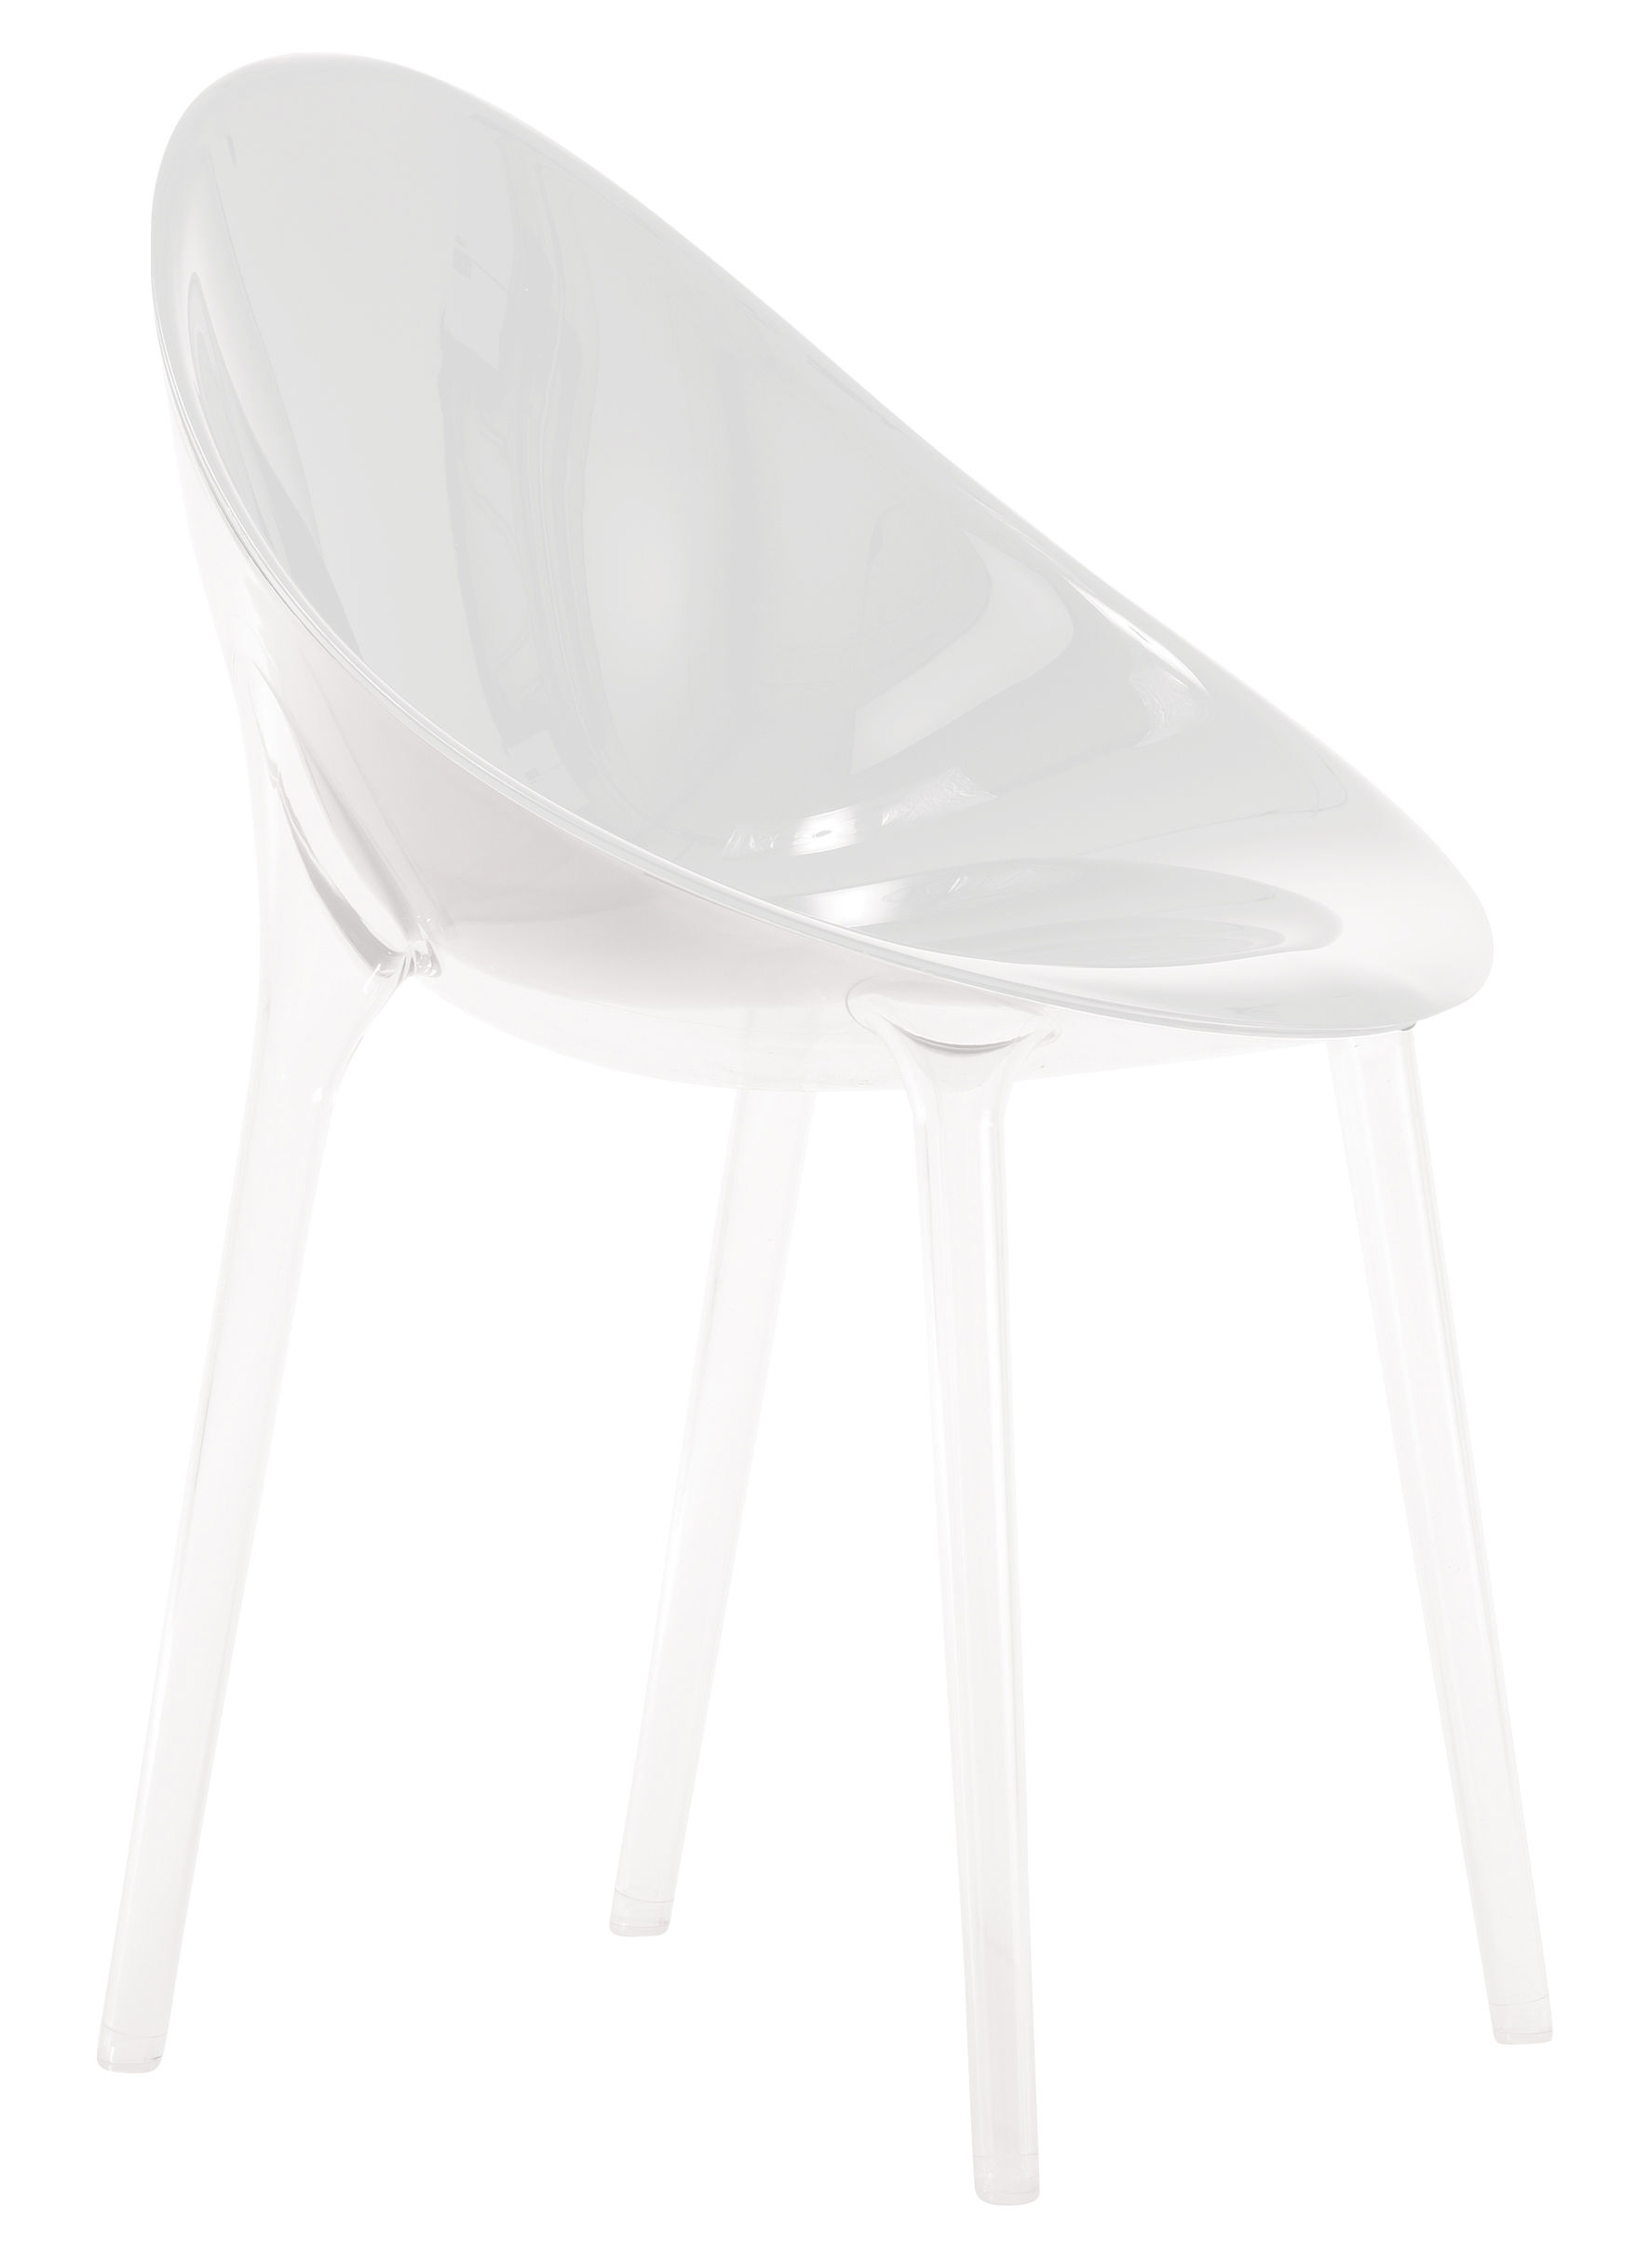 Furniture - Chairs - Mr. Impossible Armchair - opaque / Polycarbonate by Kartell - Opaque white - Polycarbonate